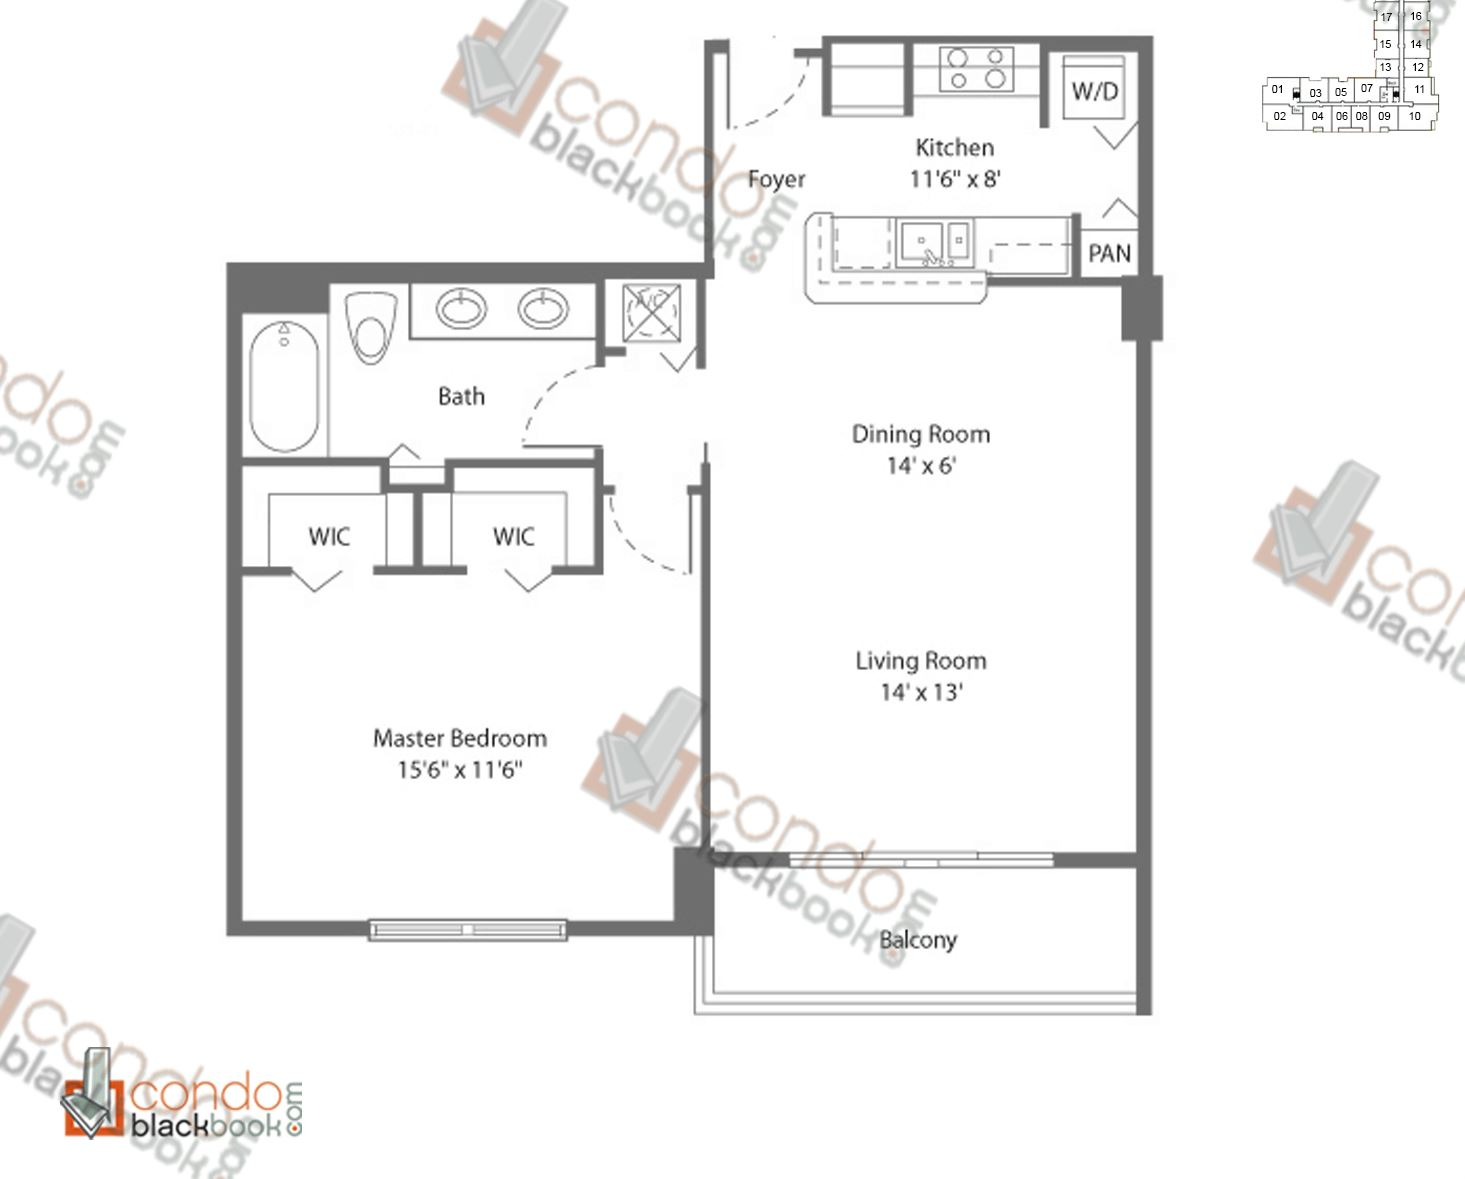 Floor plan for Cite Edgewater Miami, model A2, line 25, 1/1 bedrooms, 792 sq ft